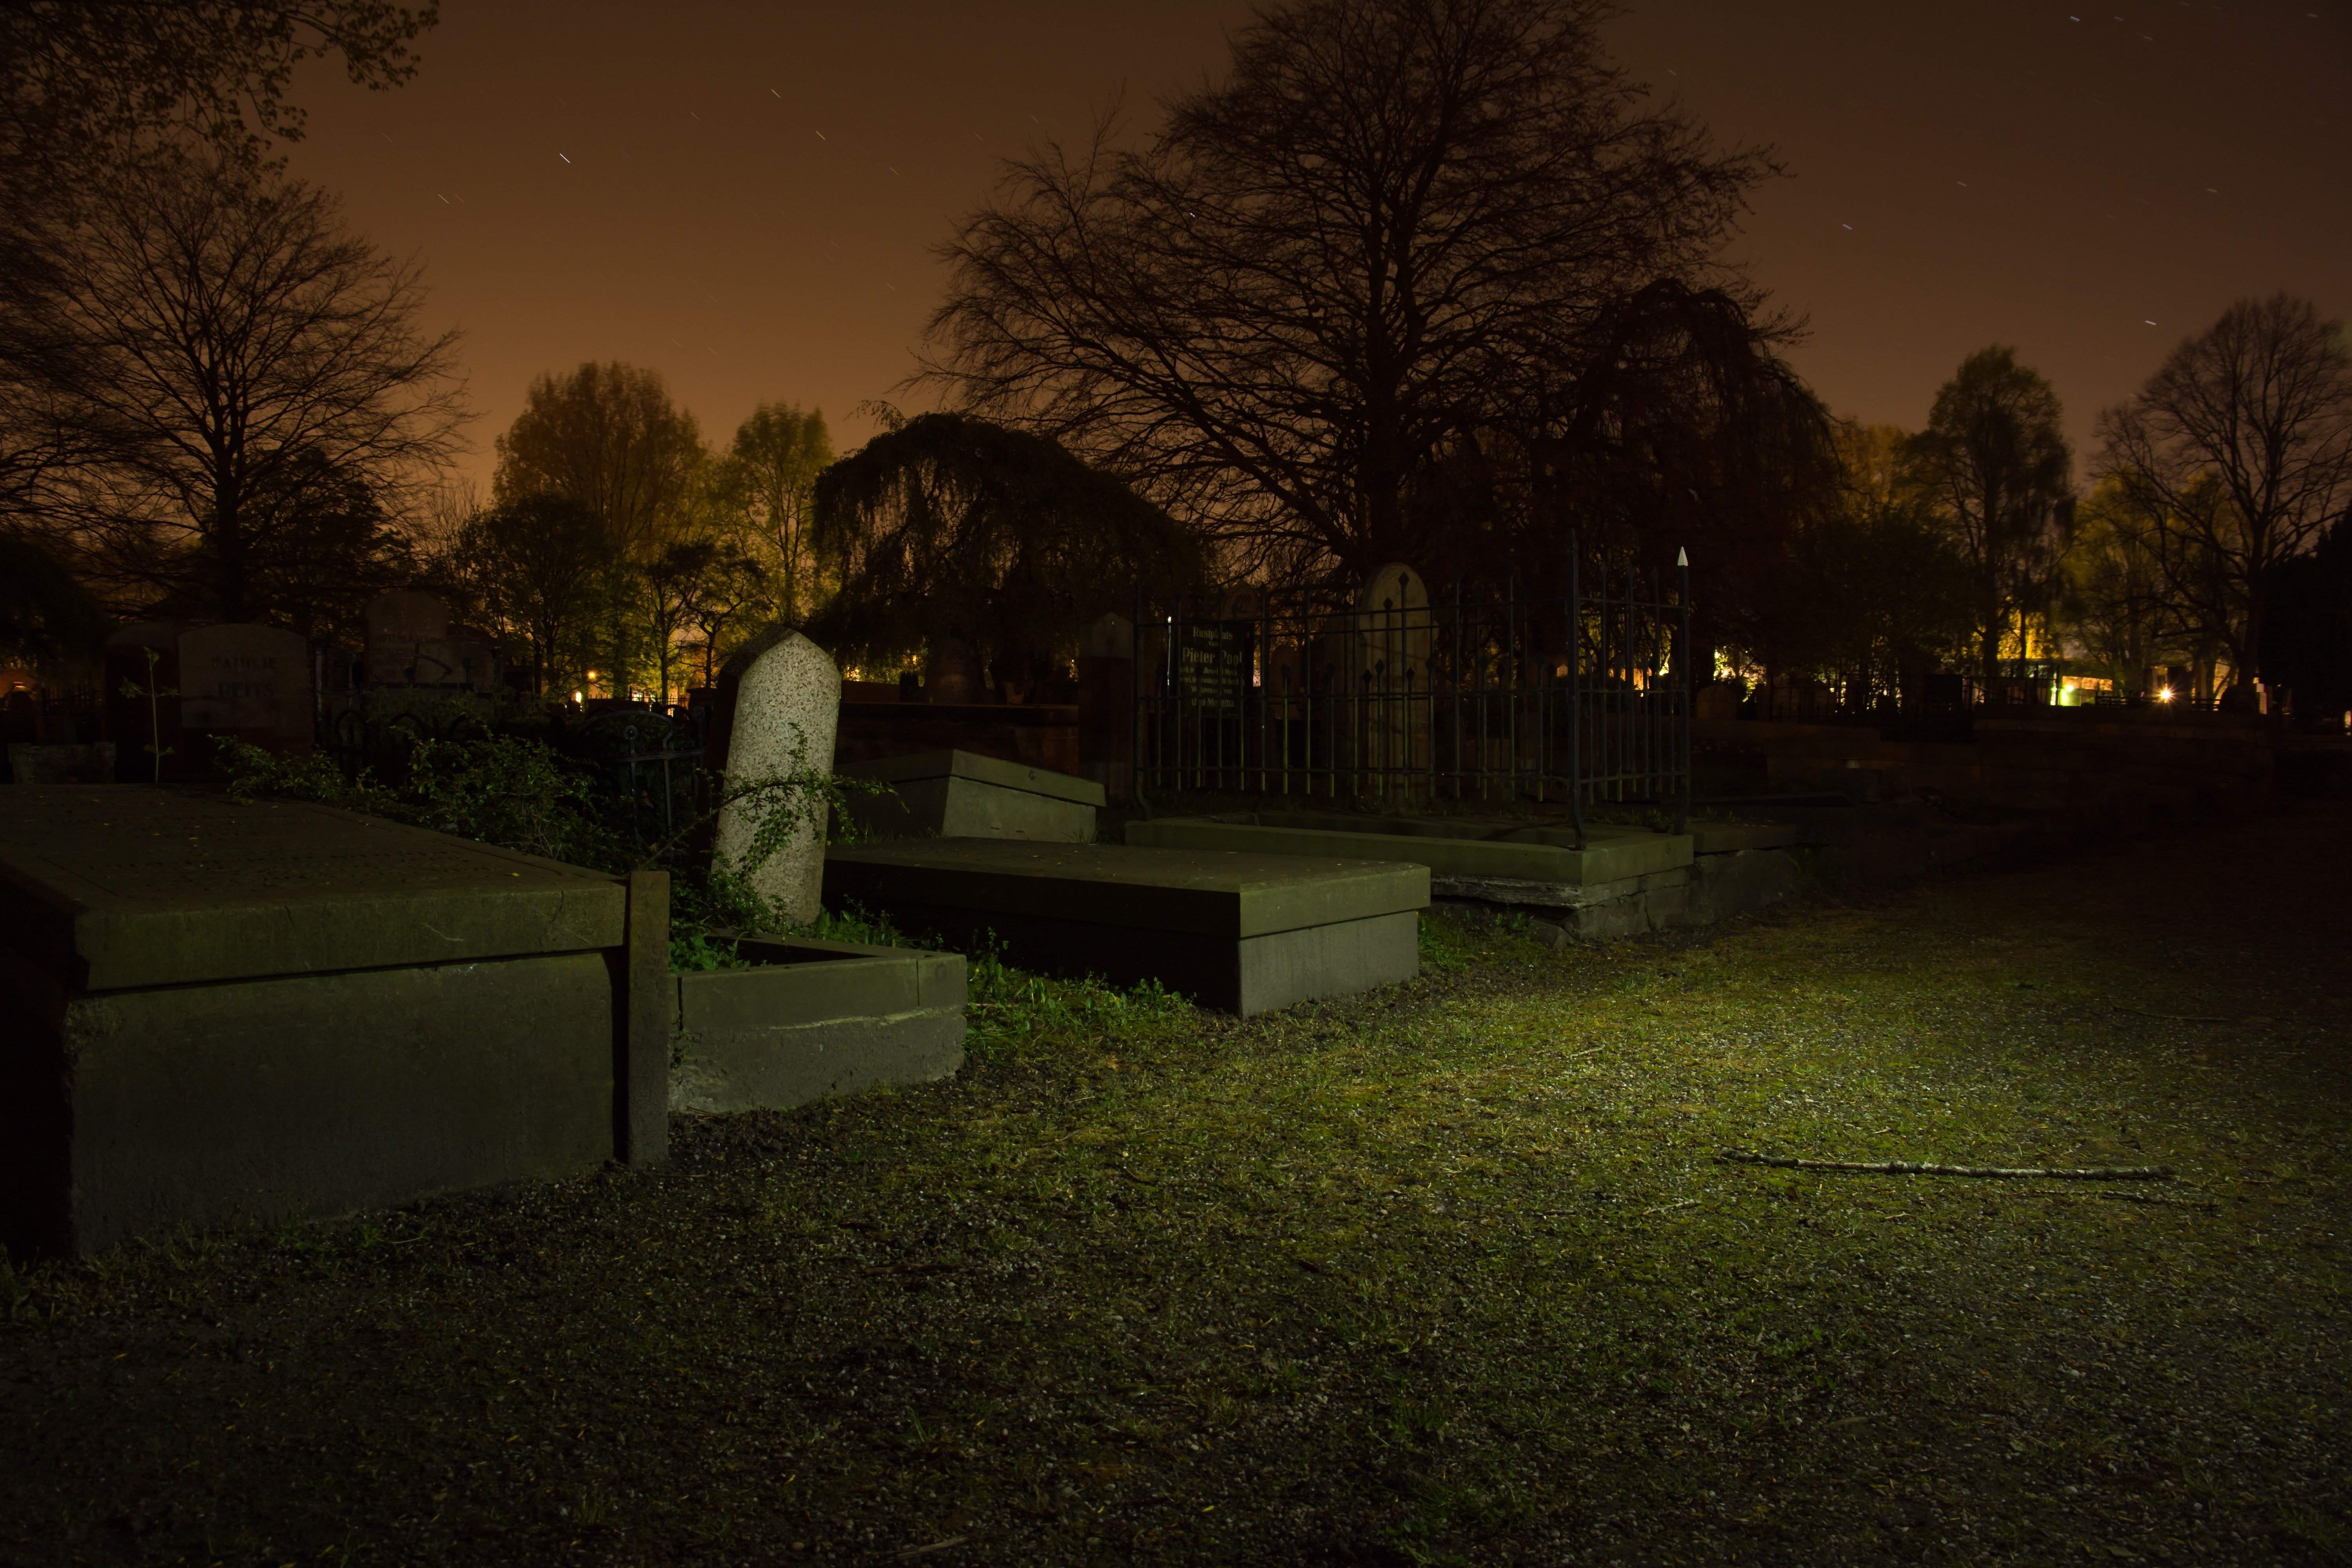 Cemetery at night. | Source: Pexels